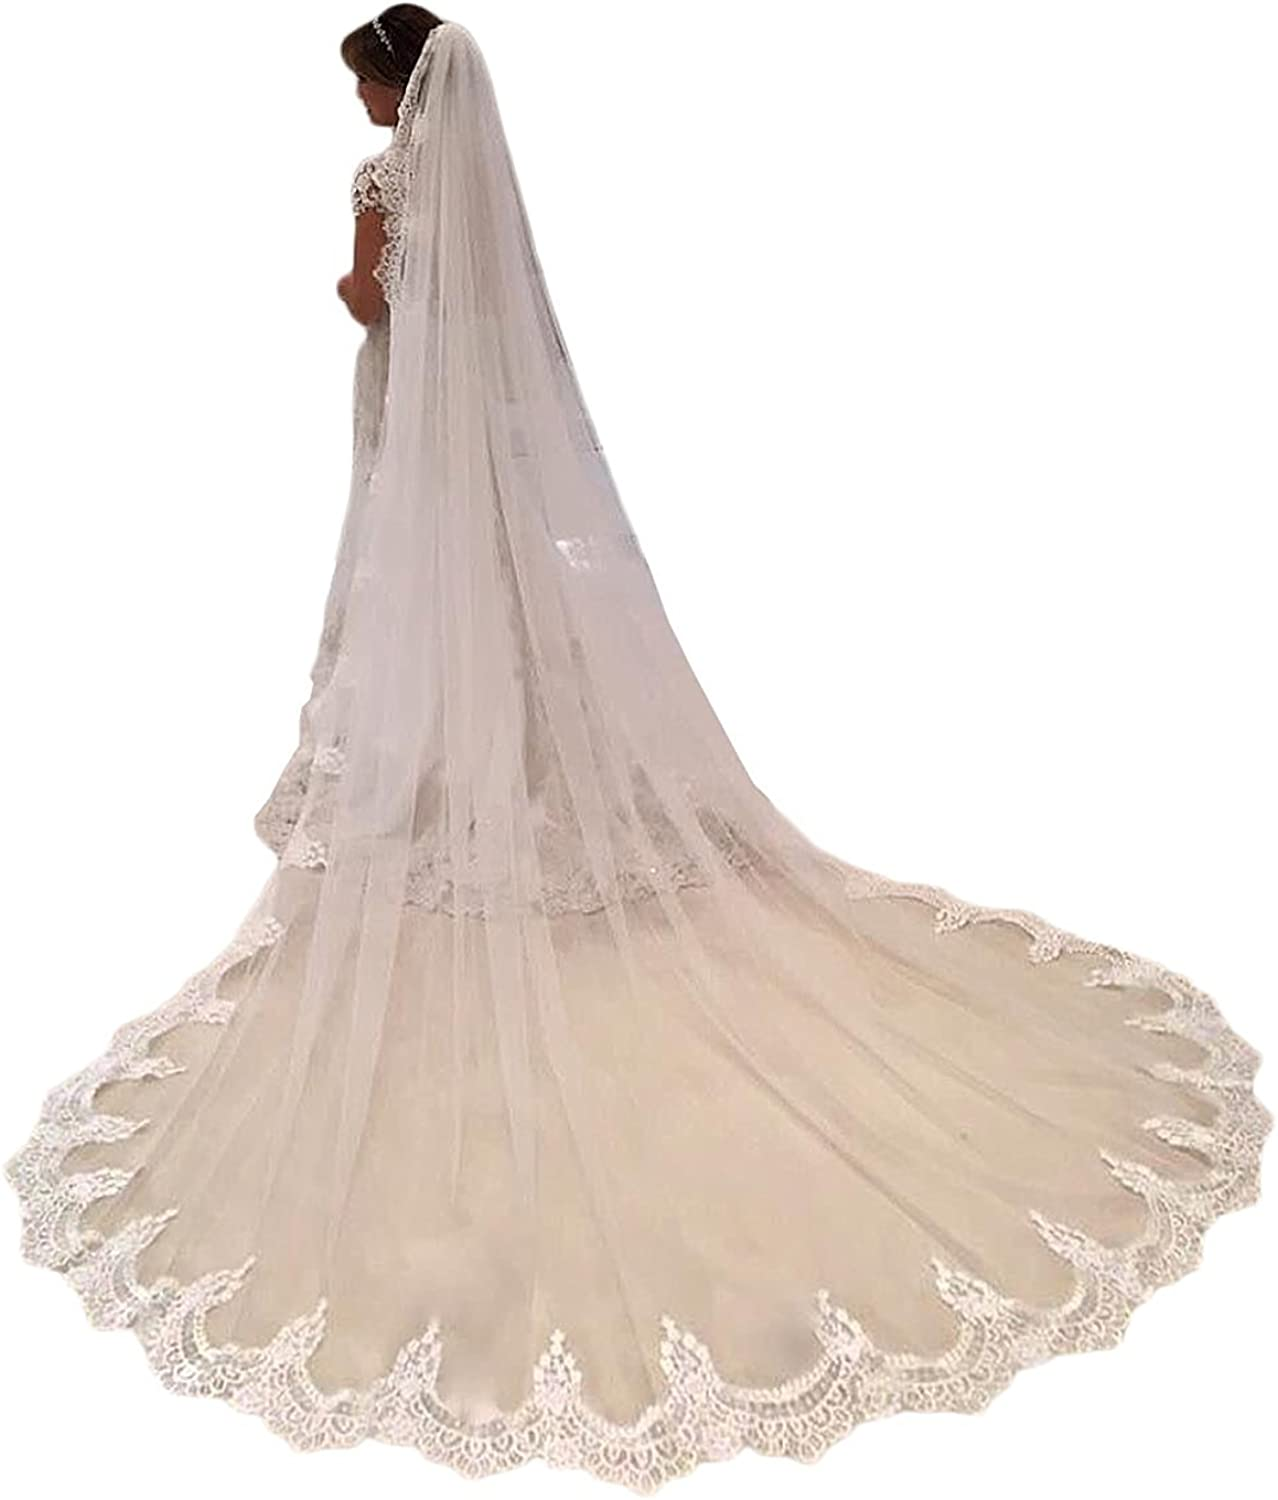 yeoyaw Bridal 1T Wedding Veils White Ivory Lace Women Veil 3 Meters for Cathedral Wedding